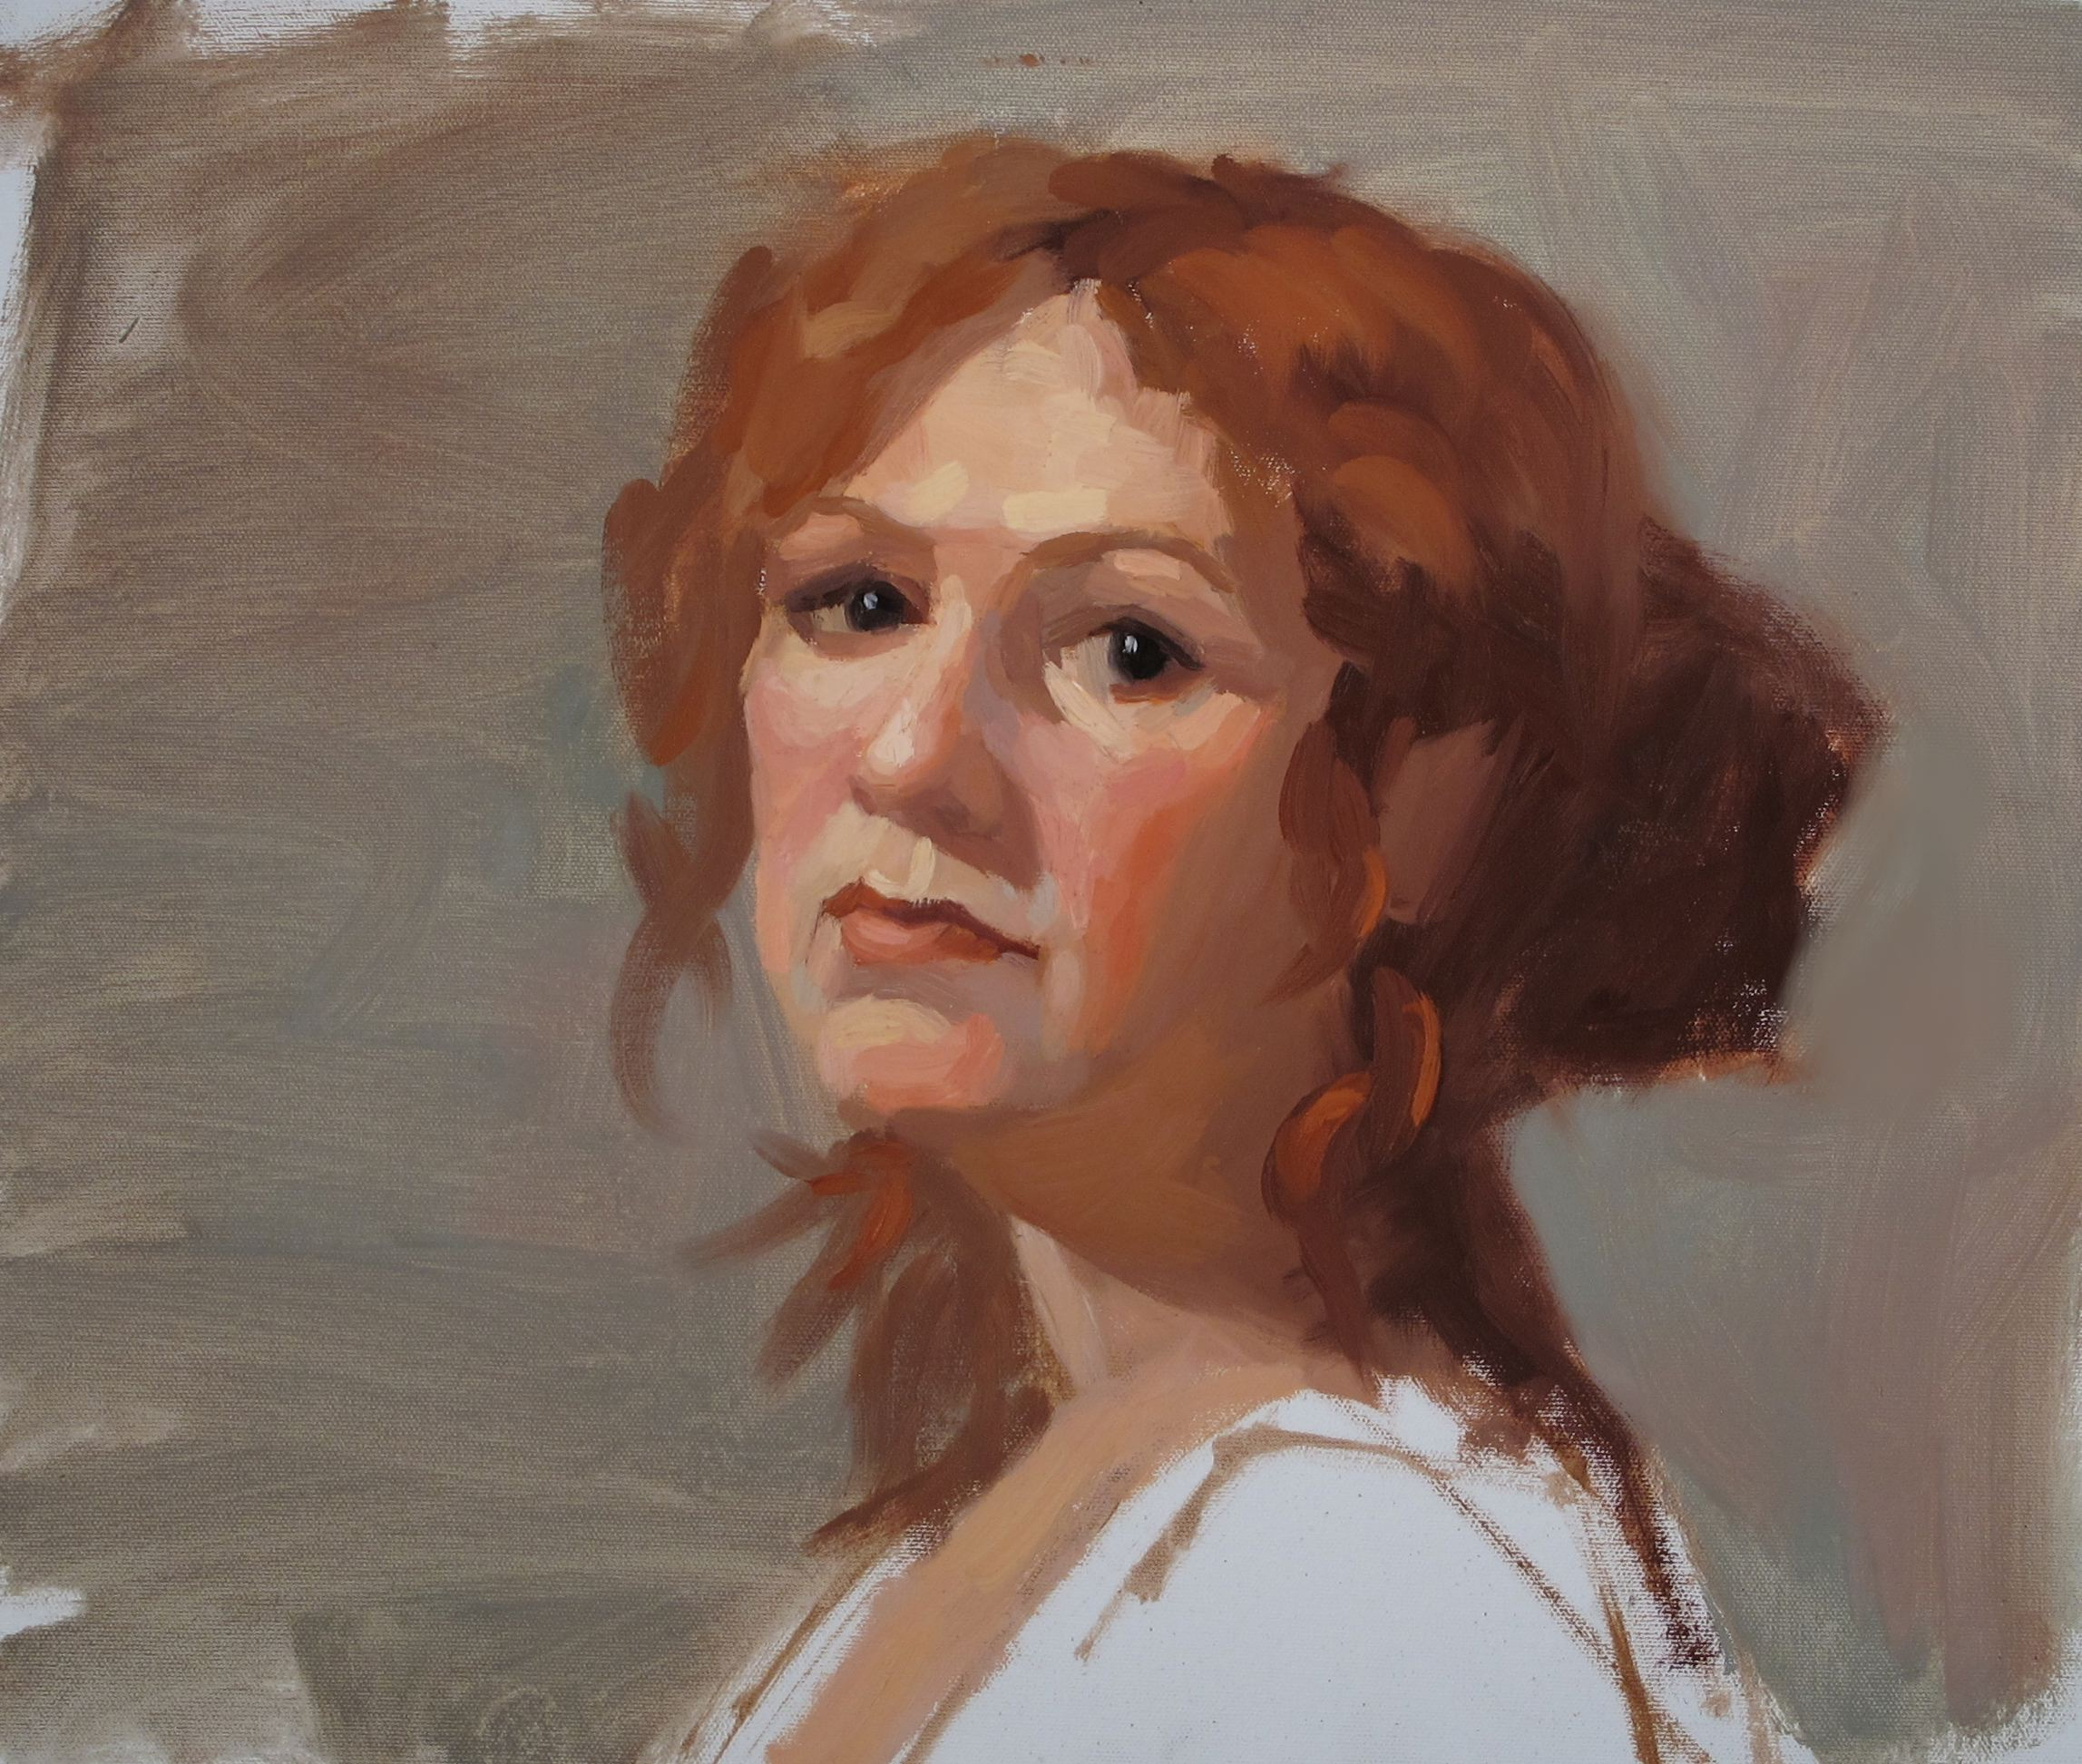 Jennifer - 3 hr oil study. 16x20: EF